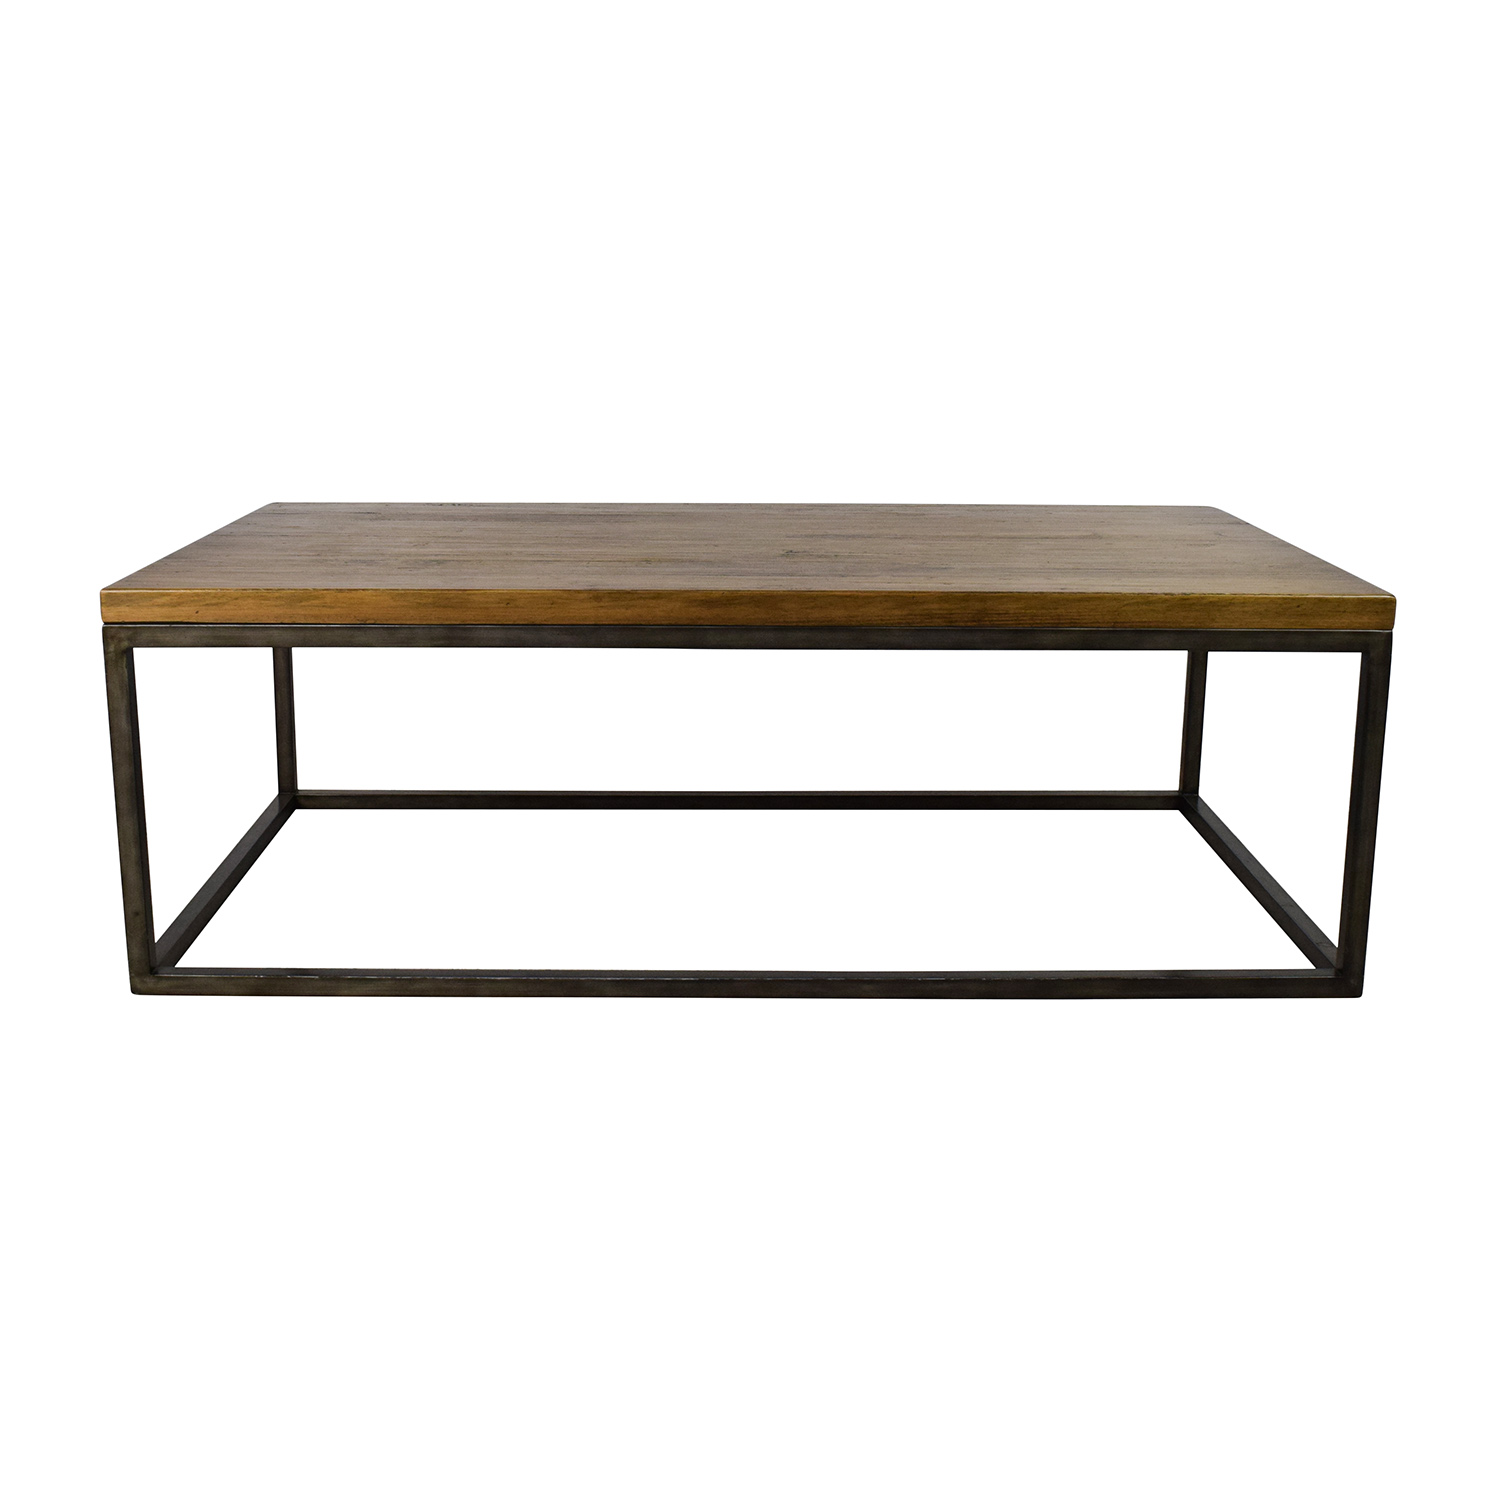 Merveilleux West Elm West Elm Box Frame Coffee Table Second Hand ...